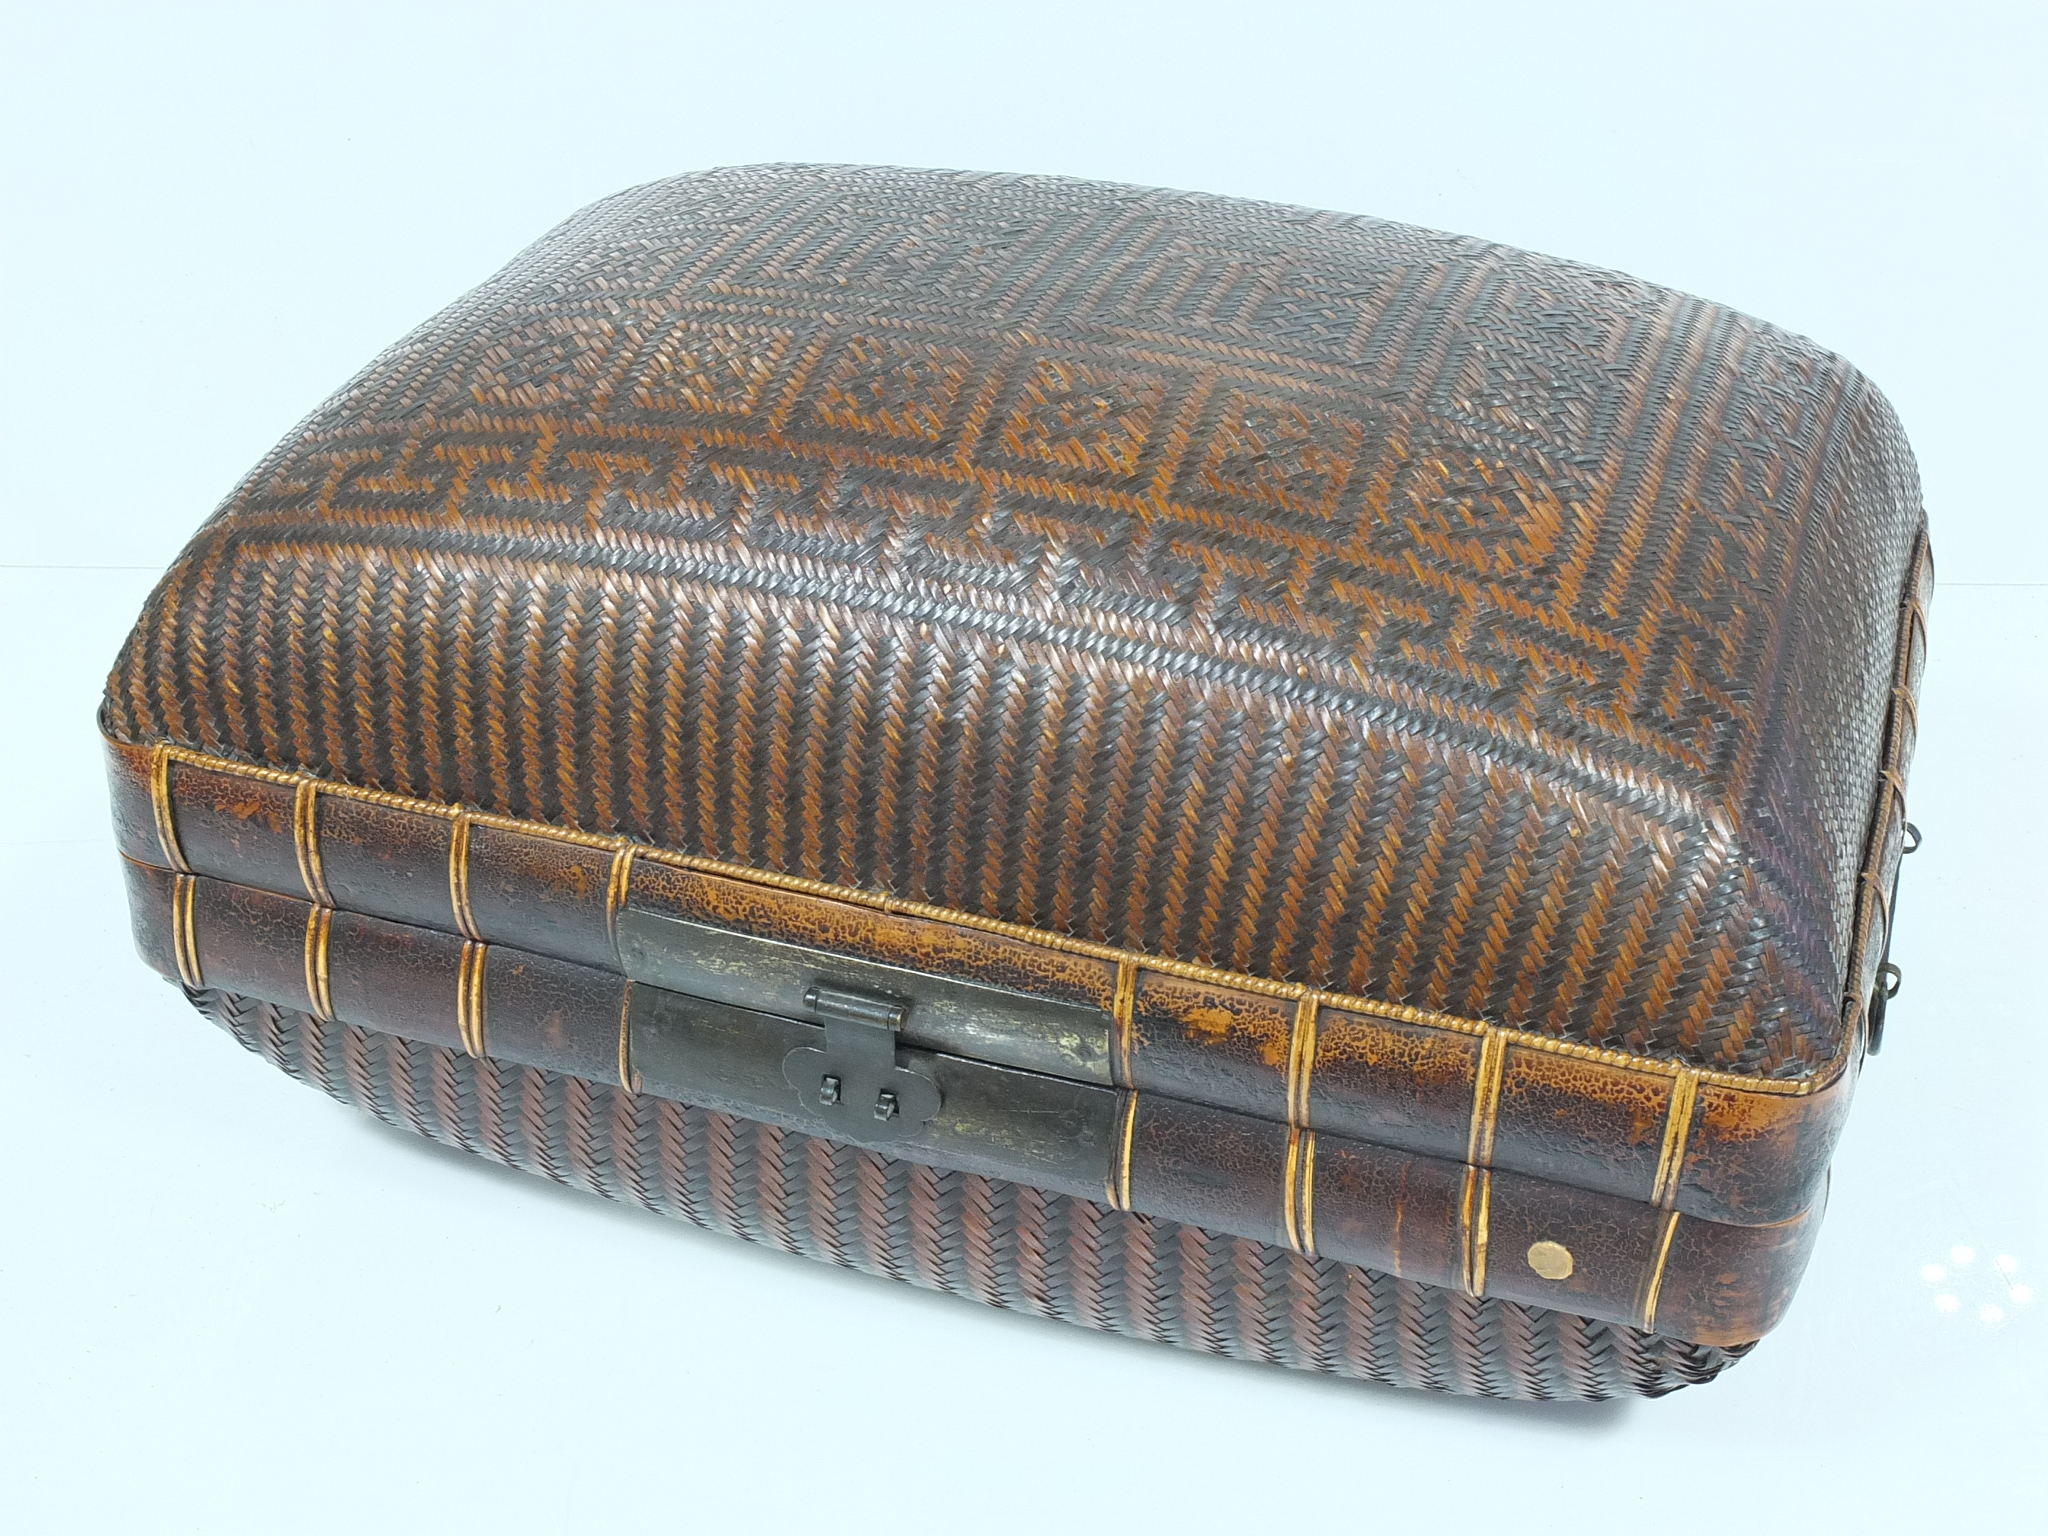 'Chinese Wicker Case'